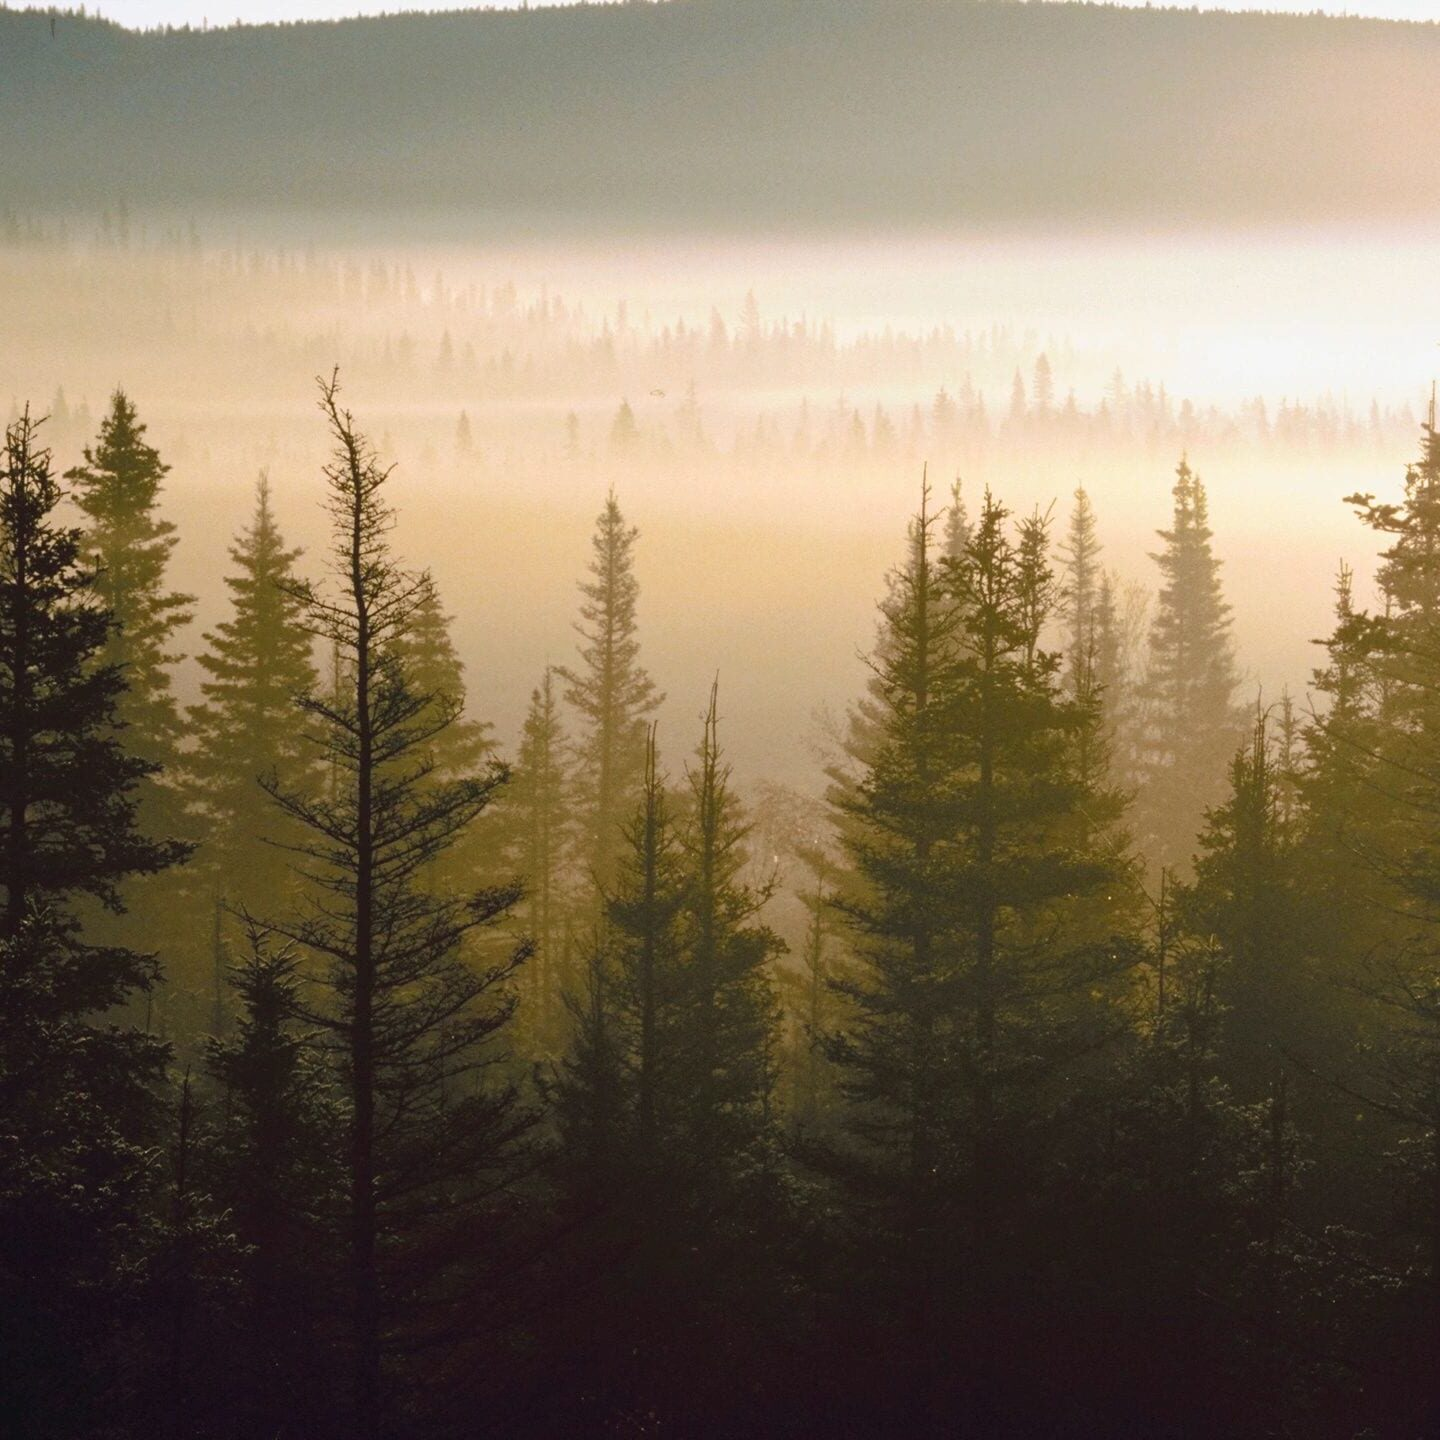 banner image of forest of trees